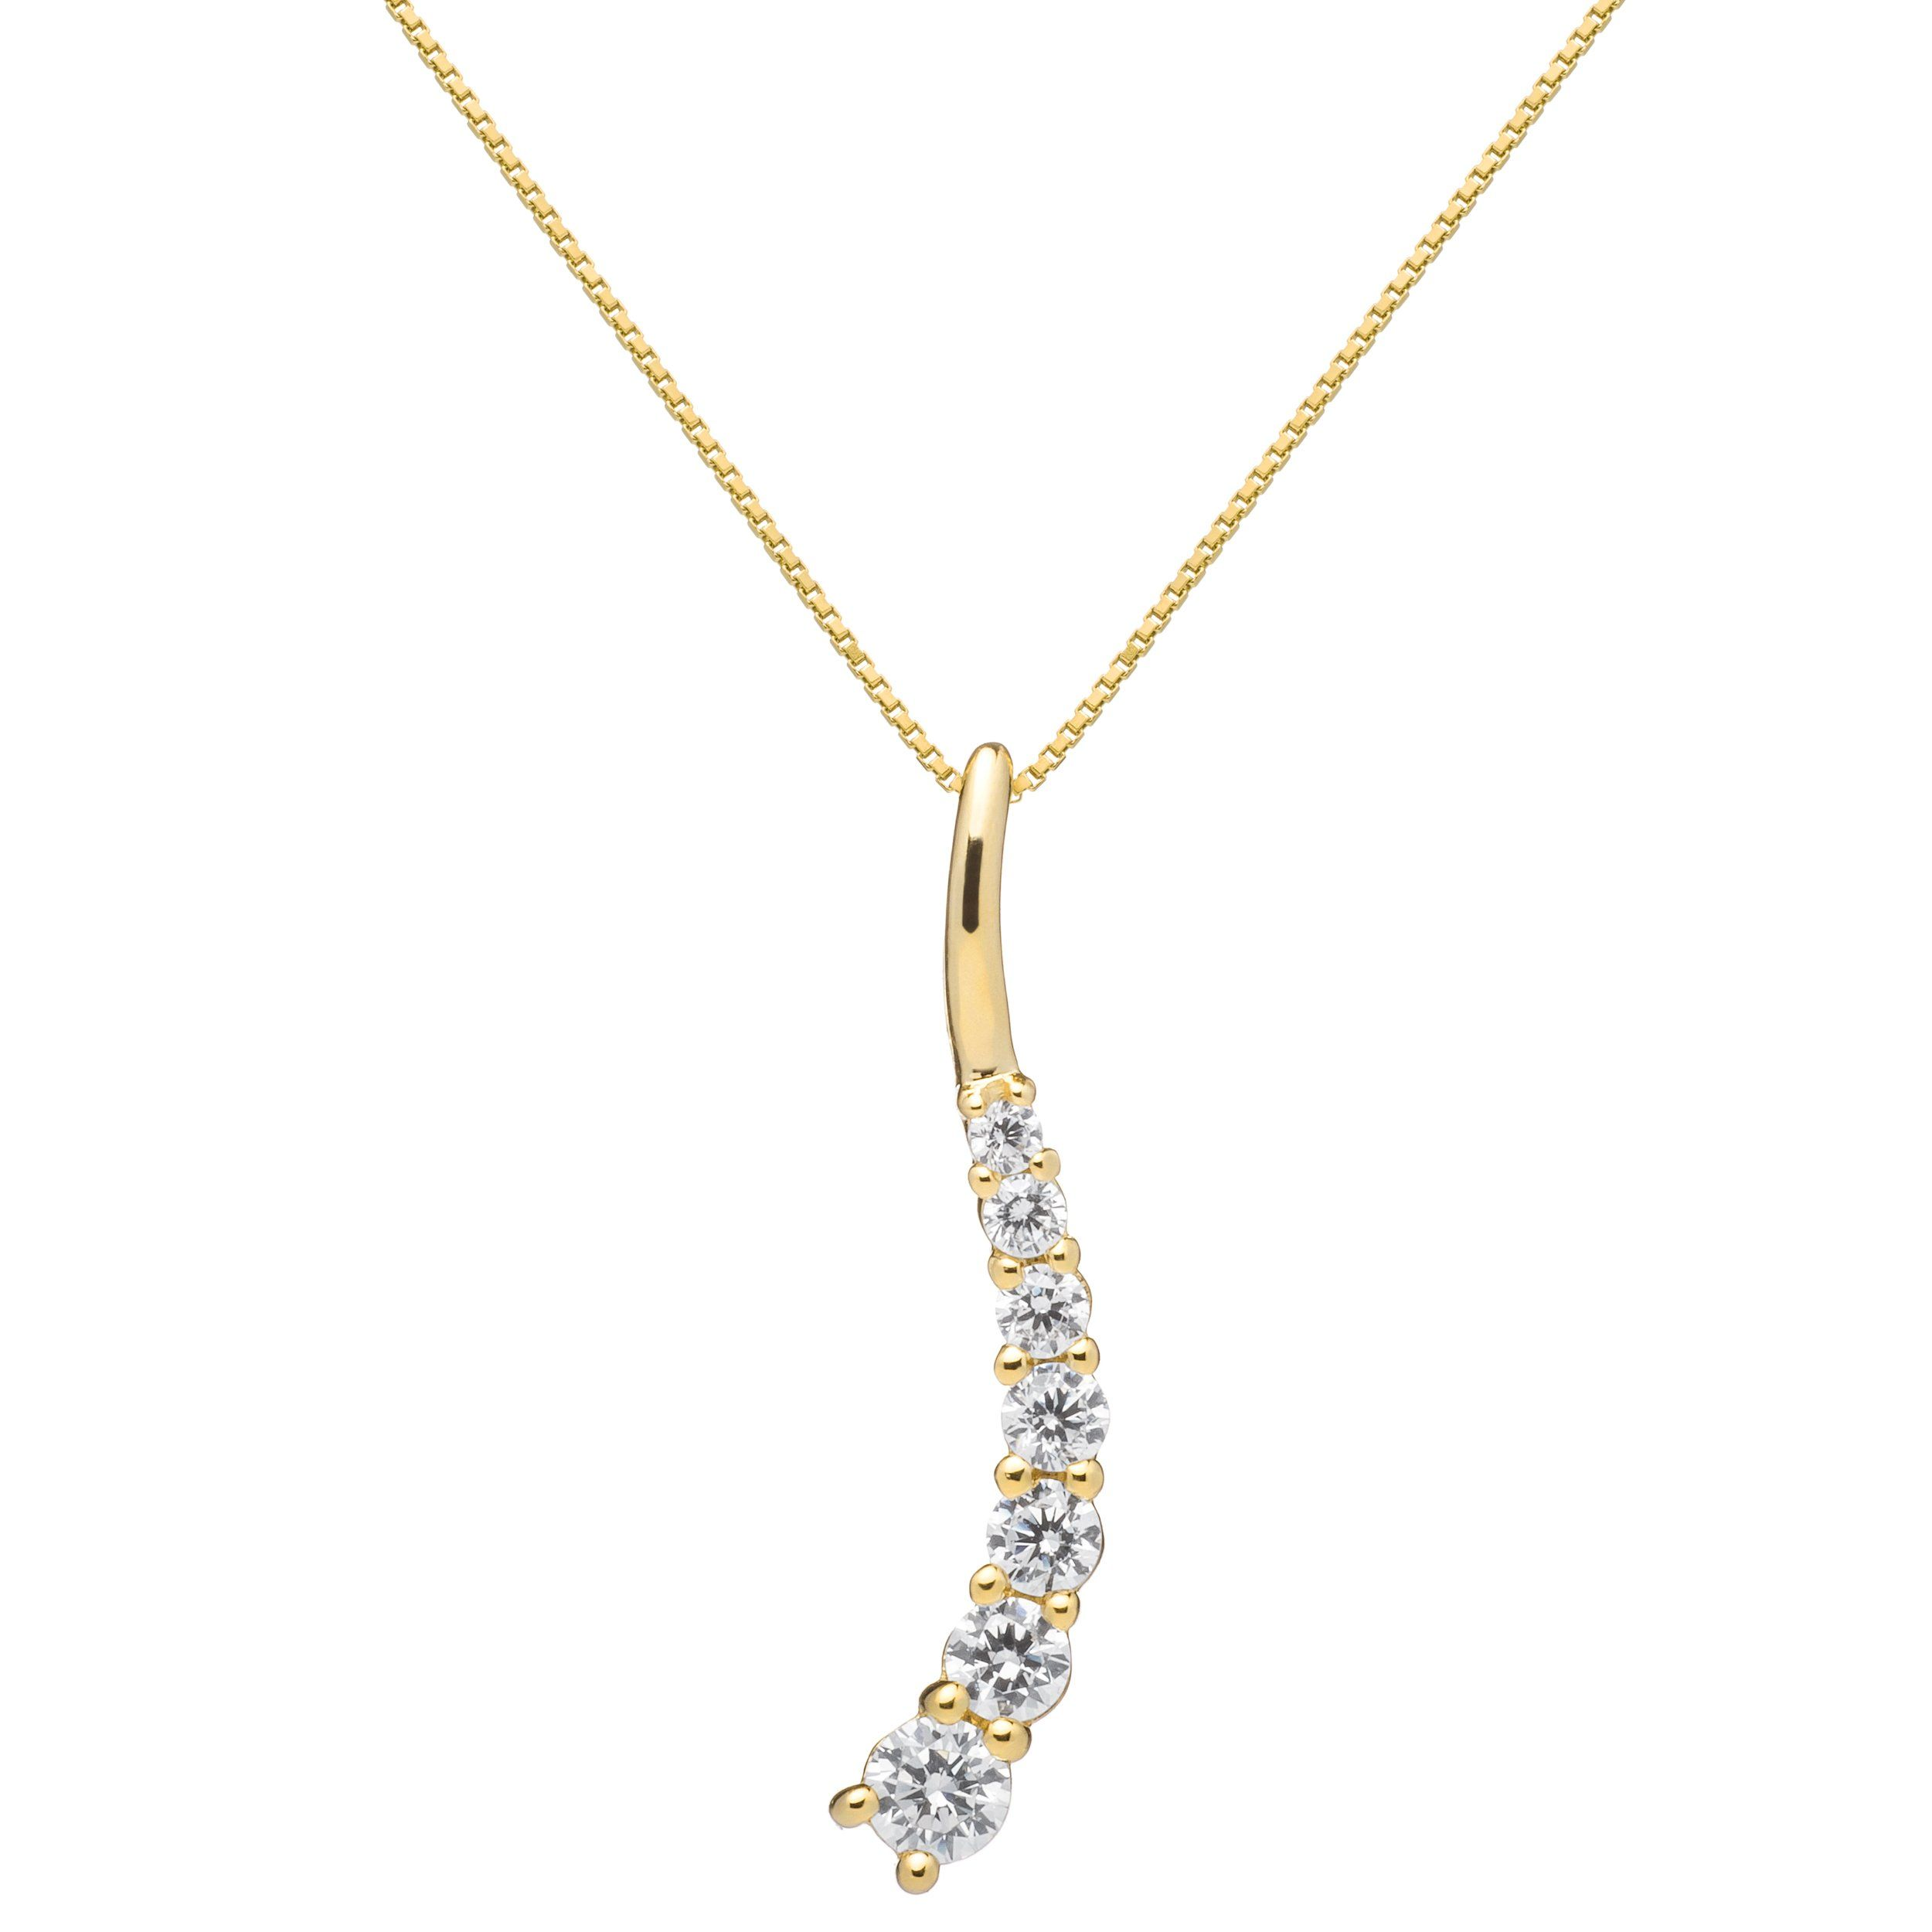 K Solid Yellow Gold Round Cut Cubic Zirconia Stone Pendant